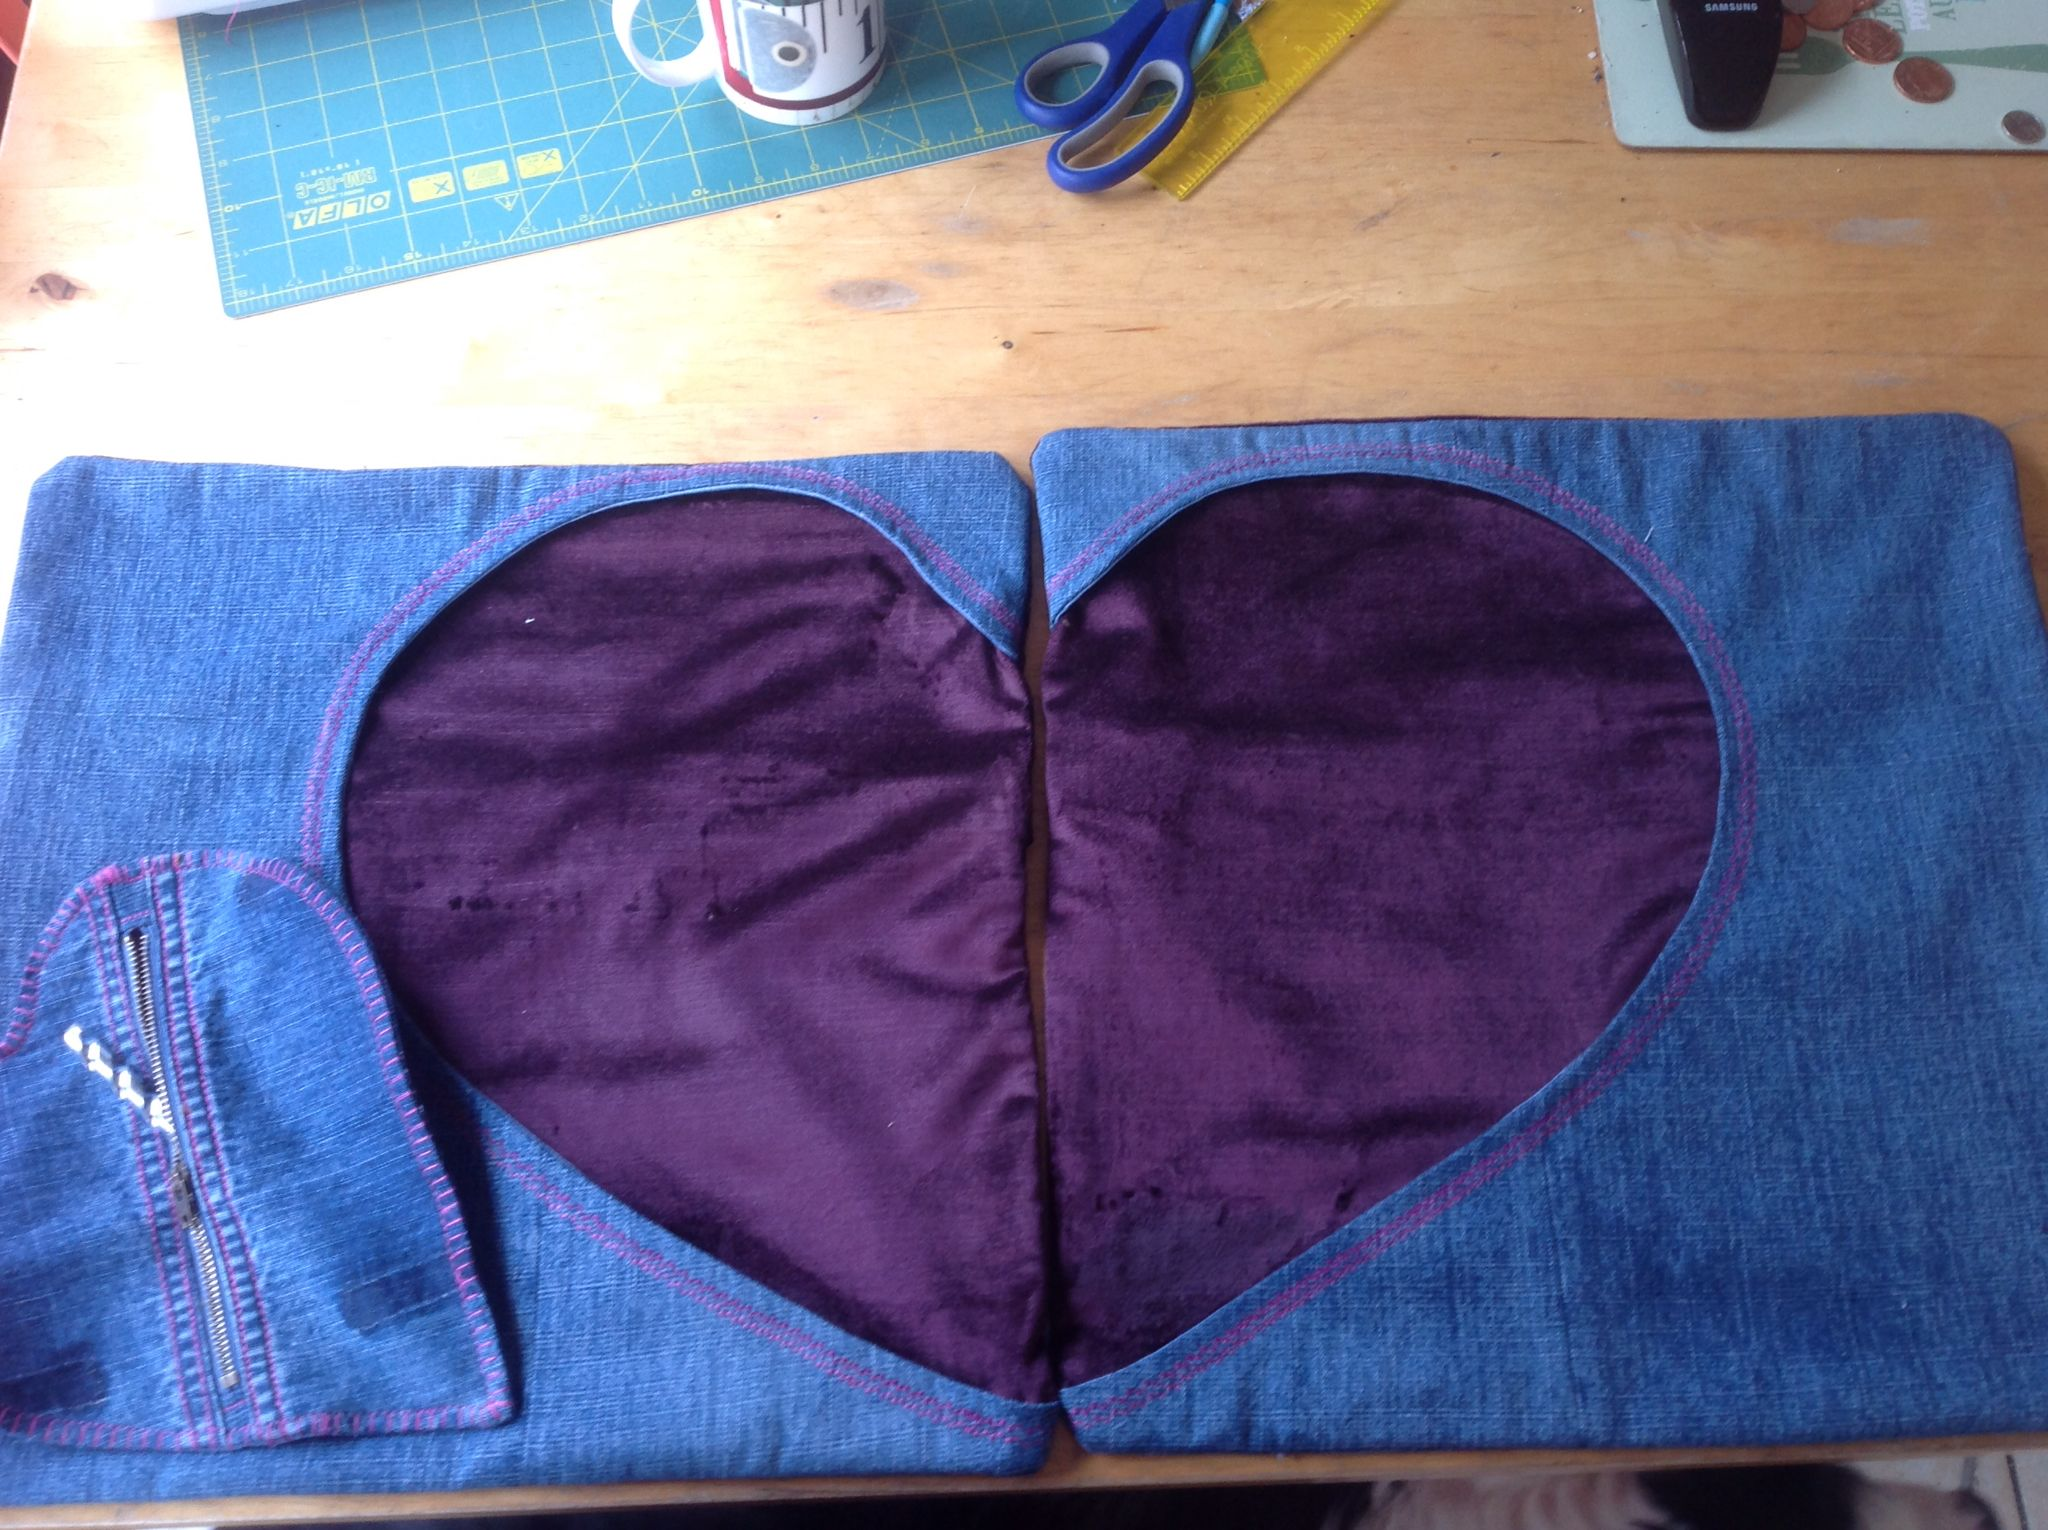 Heart reverse appliquéd cushion covers for Christopher's Valentines present 2015 Upcycled denim and new velvet  Together with a heart shaped zippered pouch for tools, little things or whatever